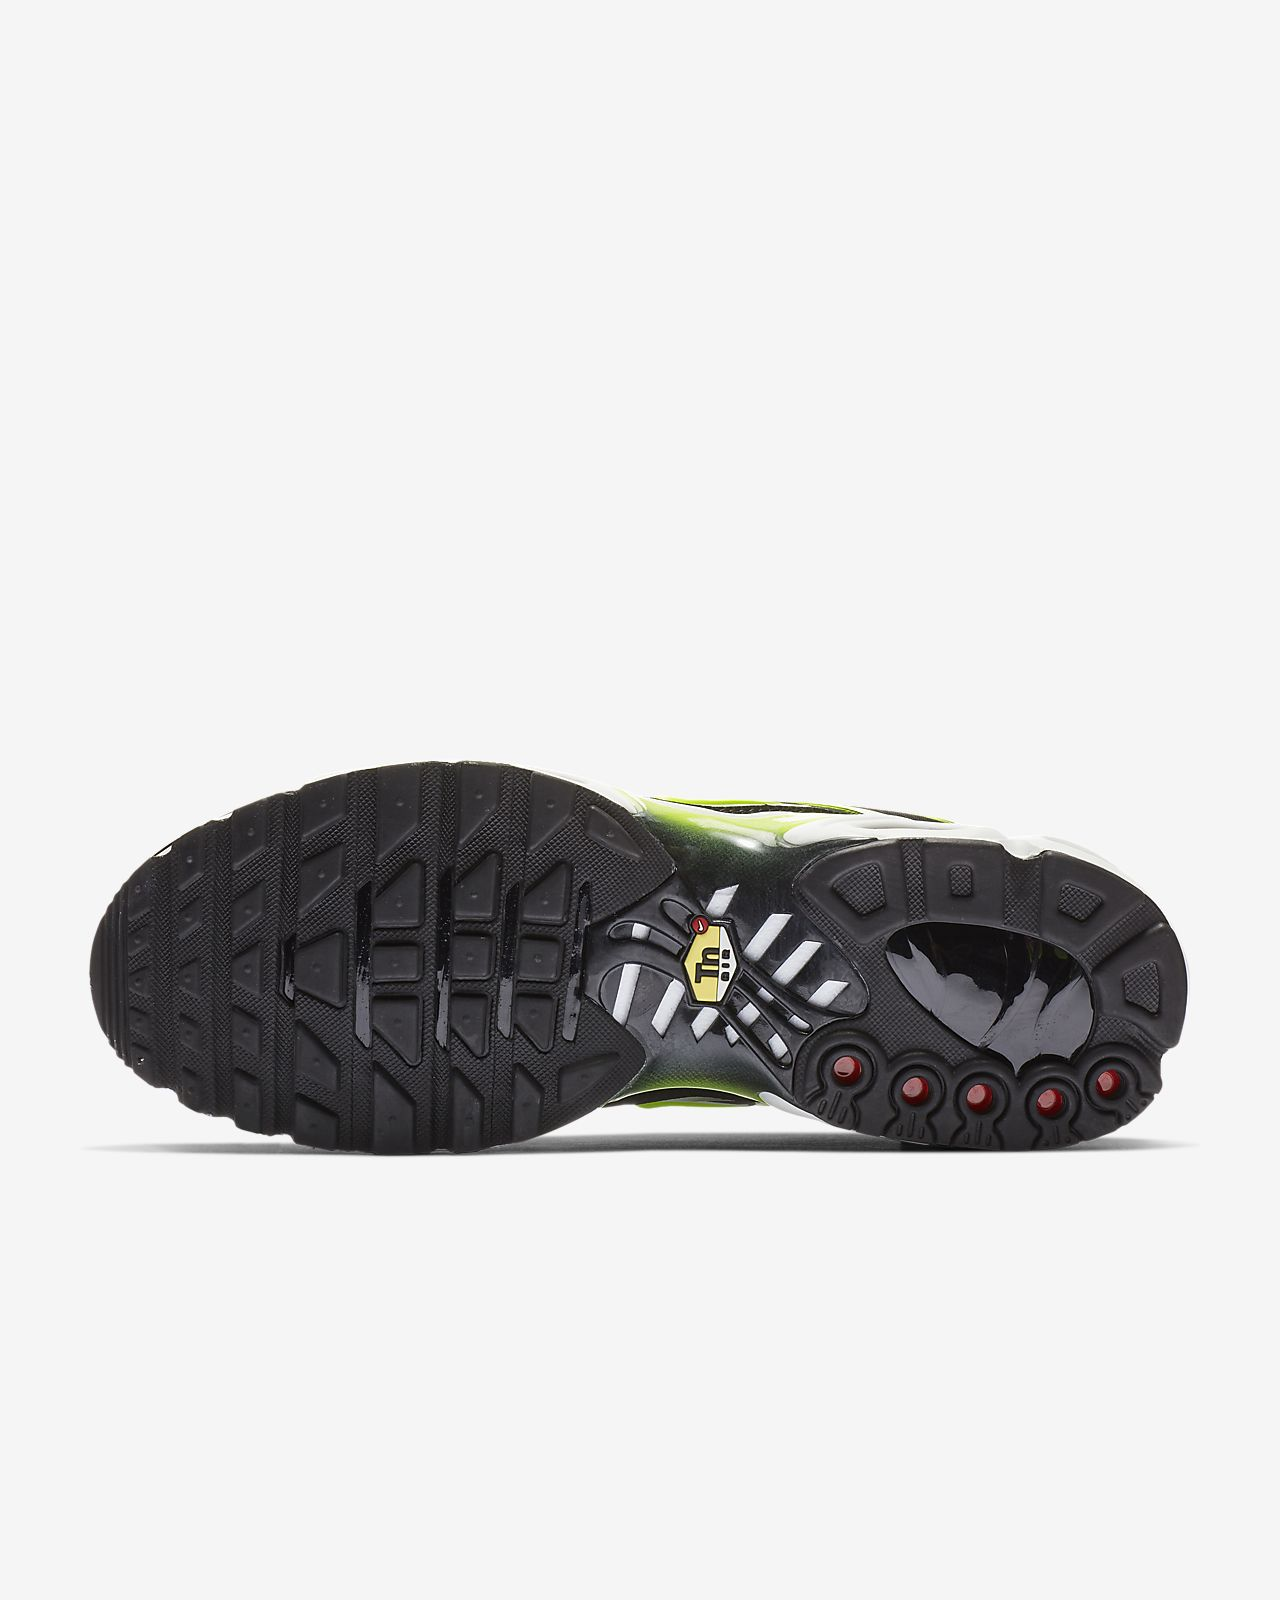 premium selection 9edb4 f074b ... Nike Air Max Plus Mens Shoe